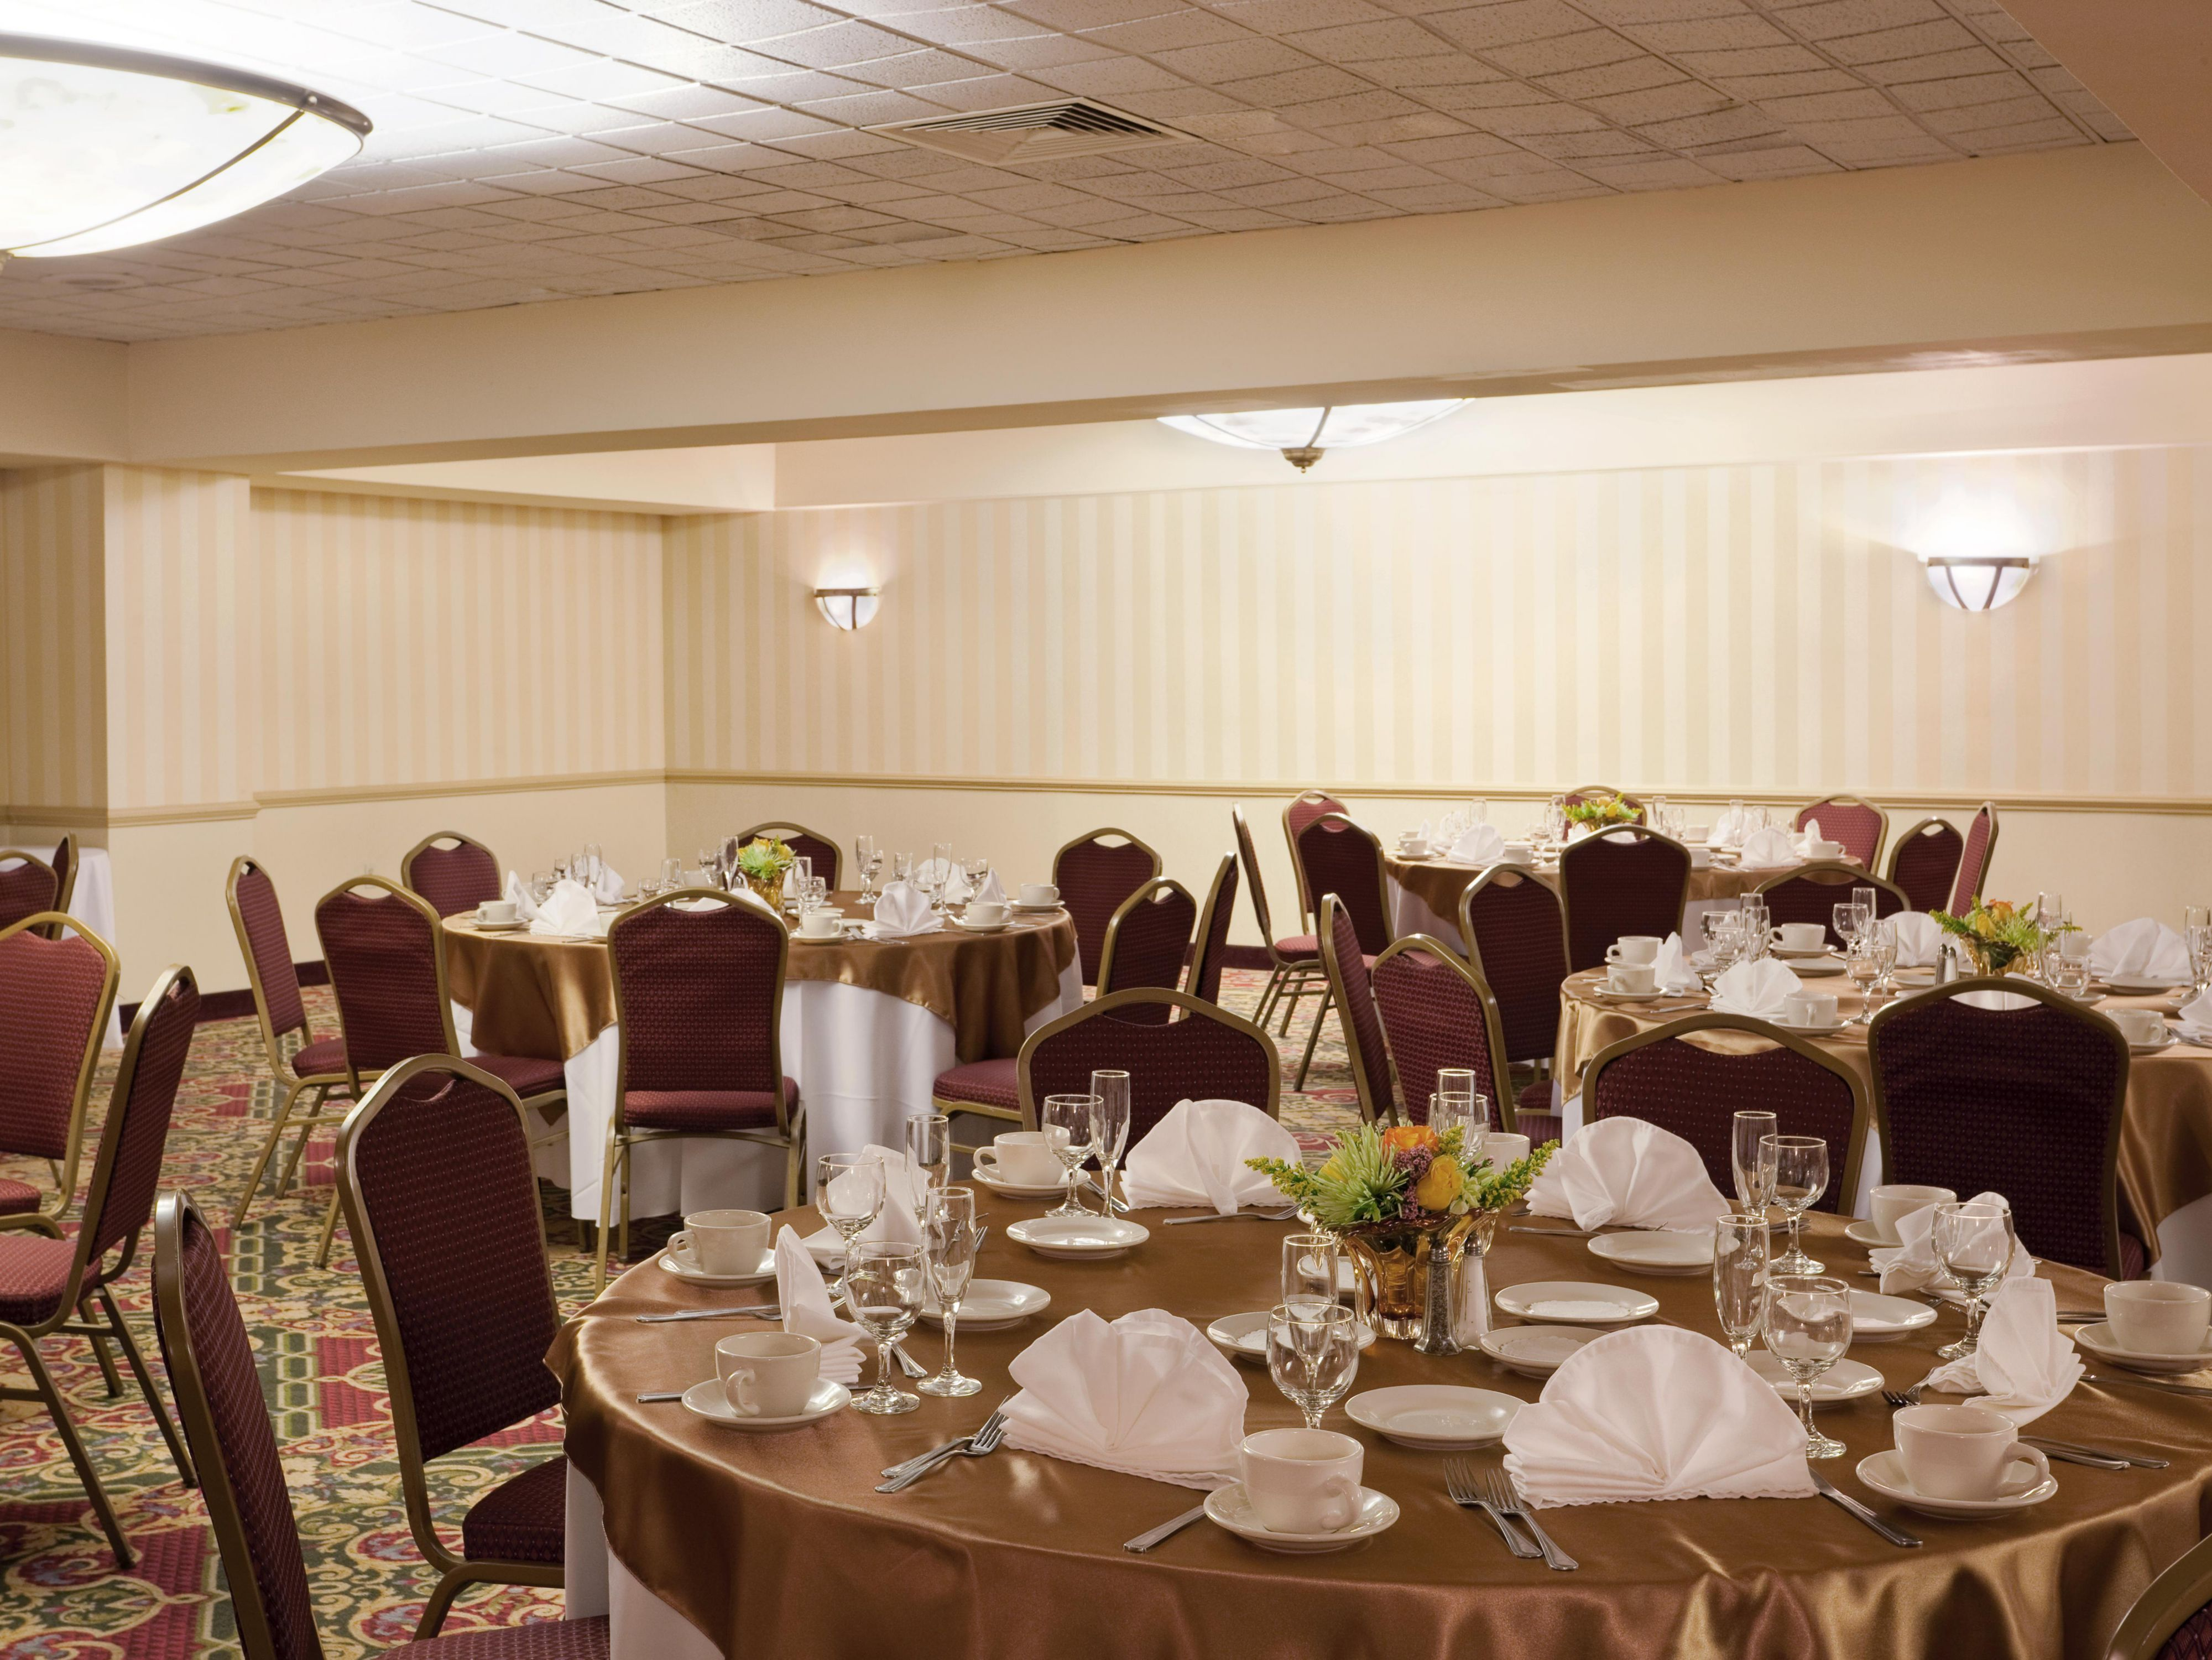 Four Boston meeting rooms offer guests 6,534 sq ft of space.